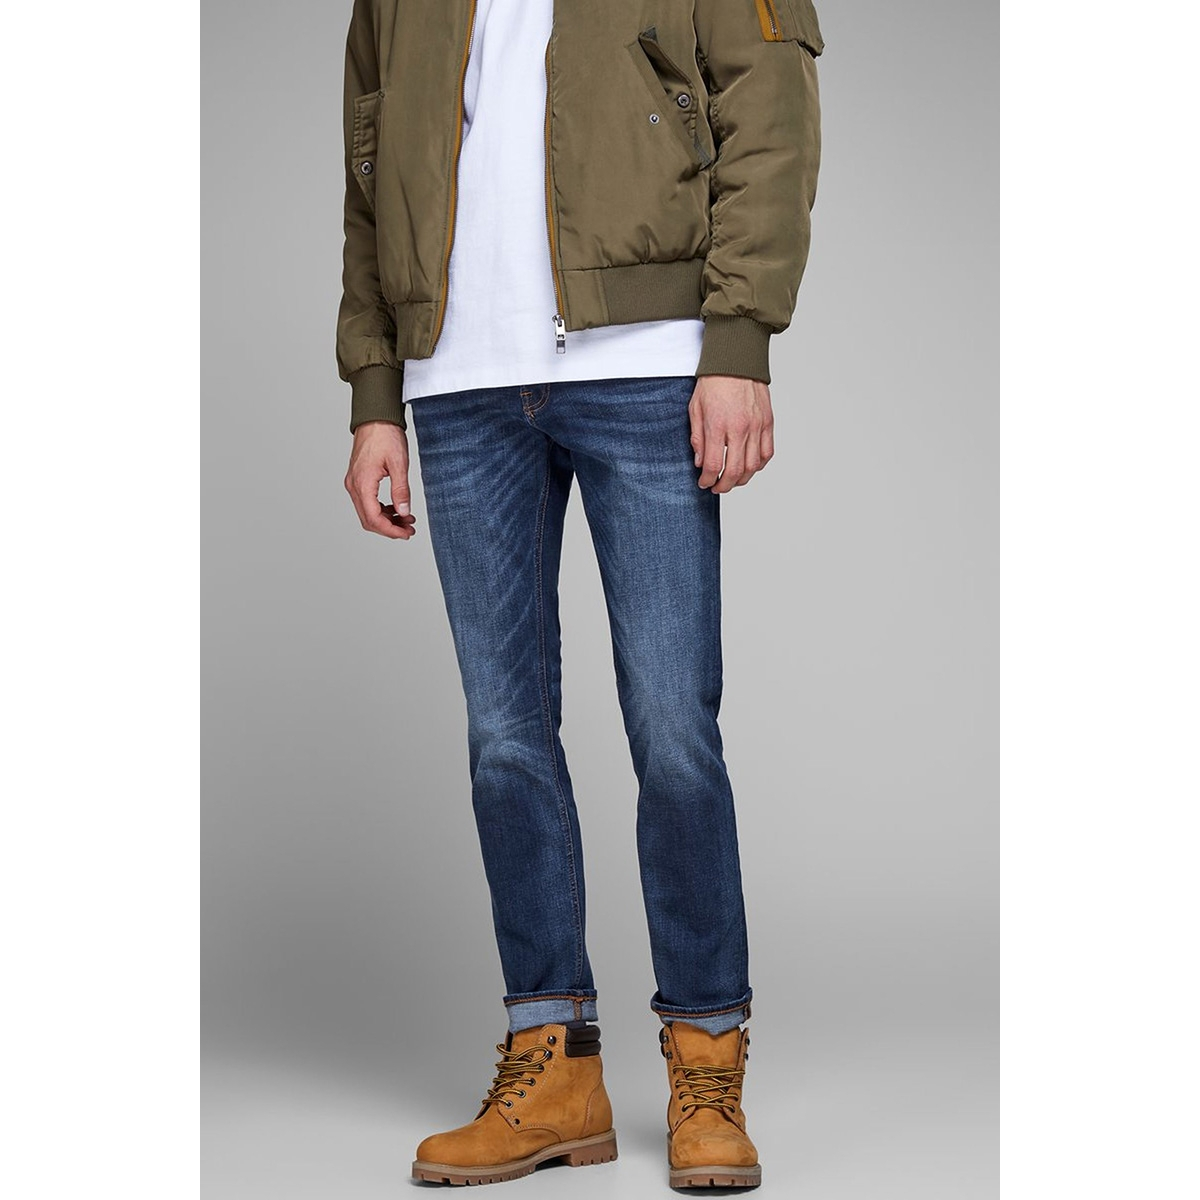 jjitim jjoriginal am 782 50sps noos 12146384 jack & jones jeans blue denim